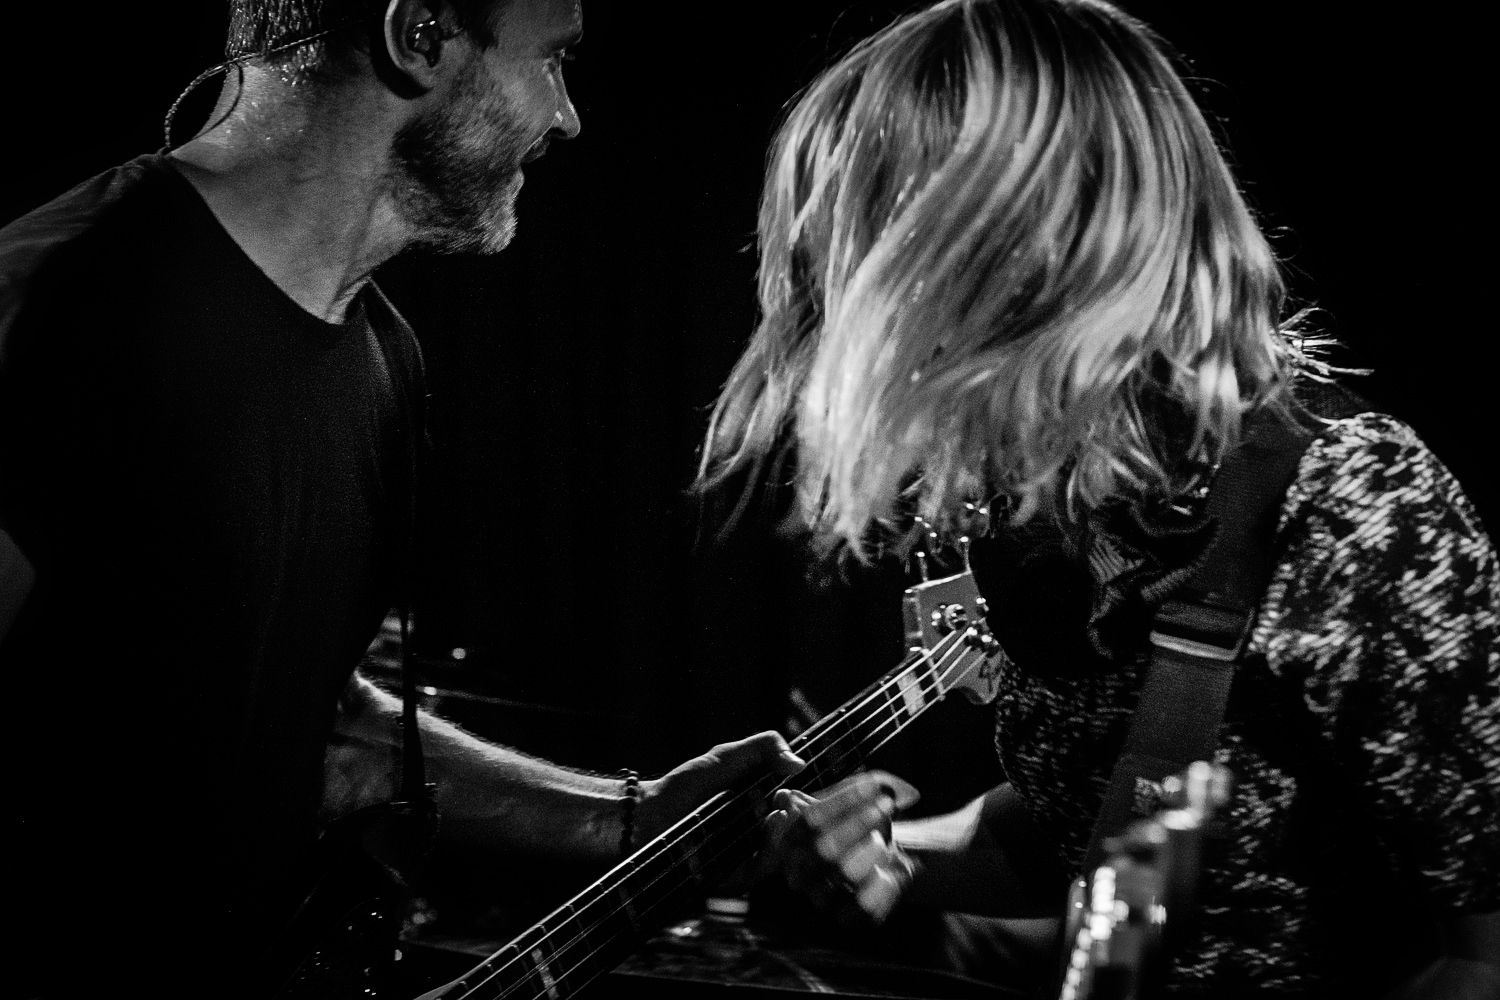 20180820-010-The-Joy-Formidable-@-Blue-Shell-Köln-Cred_Michael_Lamertz_@indie.and_.more_.jpg